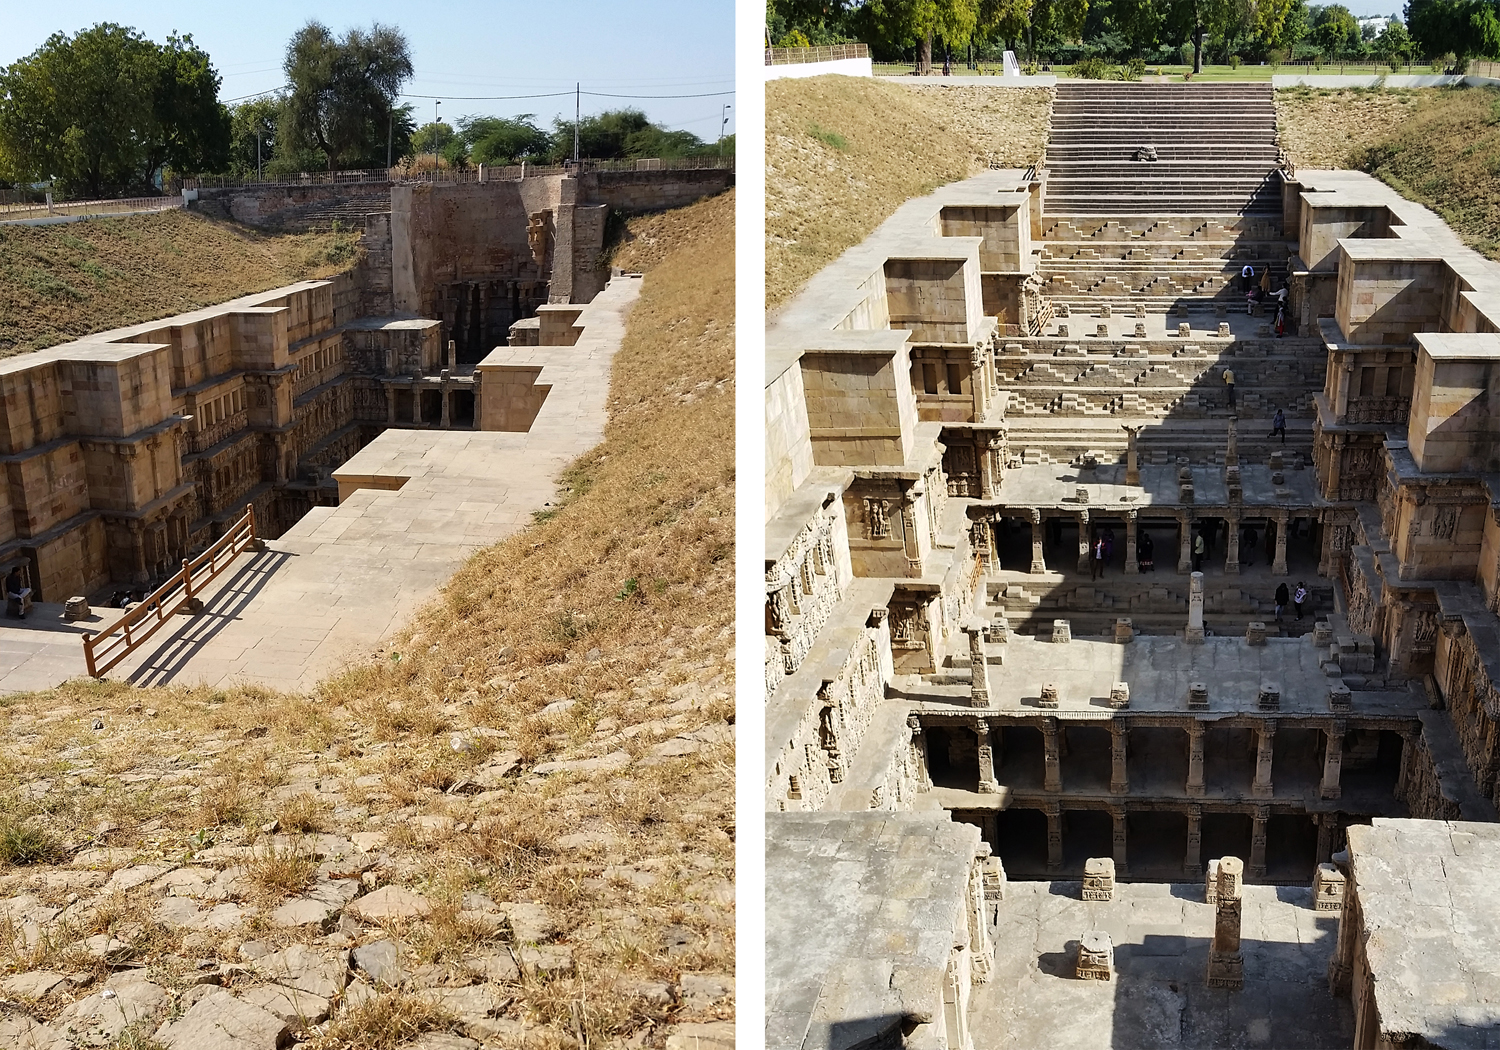 """Image 6: The two images here of the Ran-ki-vav, or """"Queen's Stepwell,"""" highlight how there is very little above the line of ground that would suggest the complexity of the structure below. December, 2015. Photograph by Jessie Wilcox"""